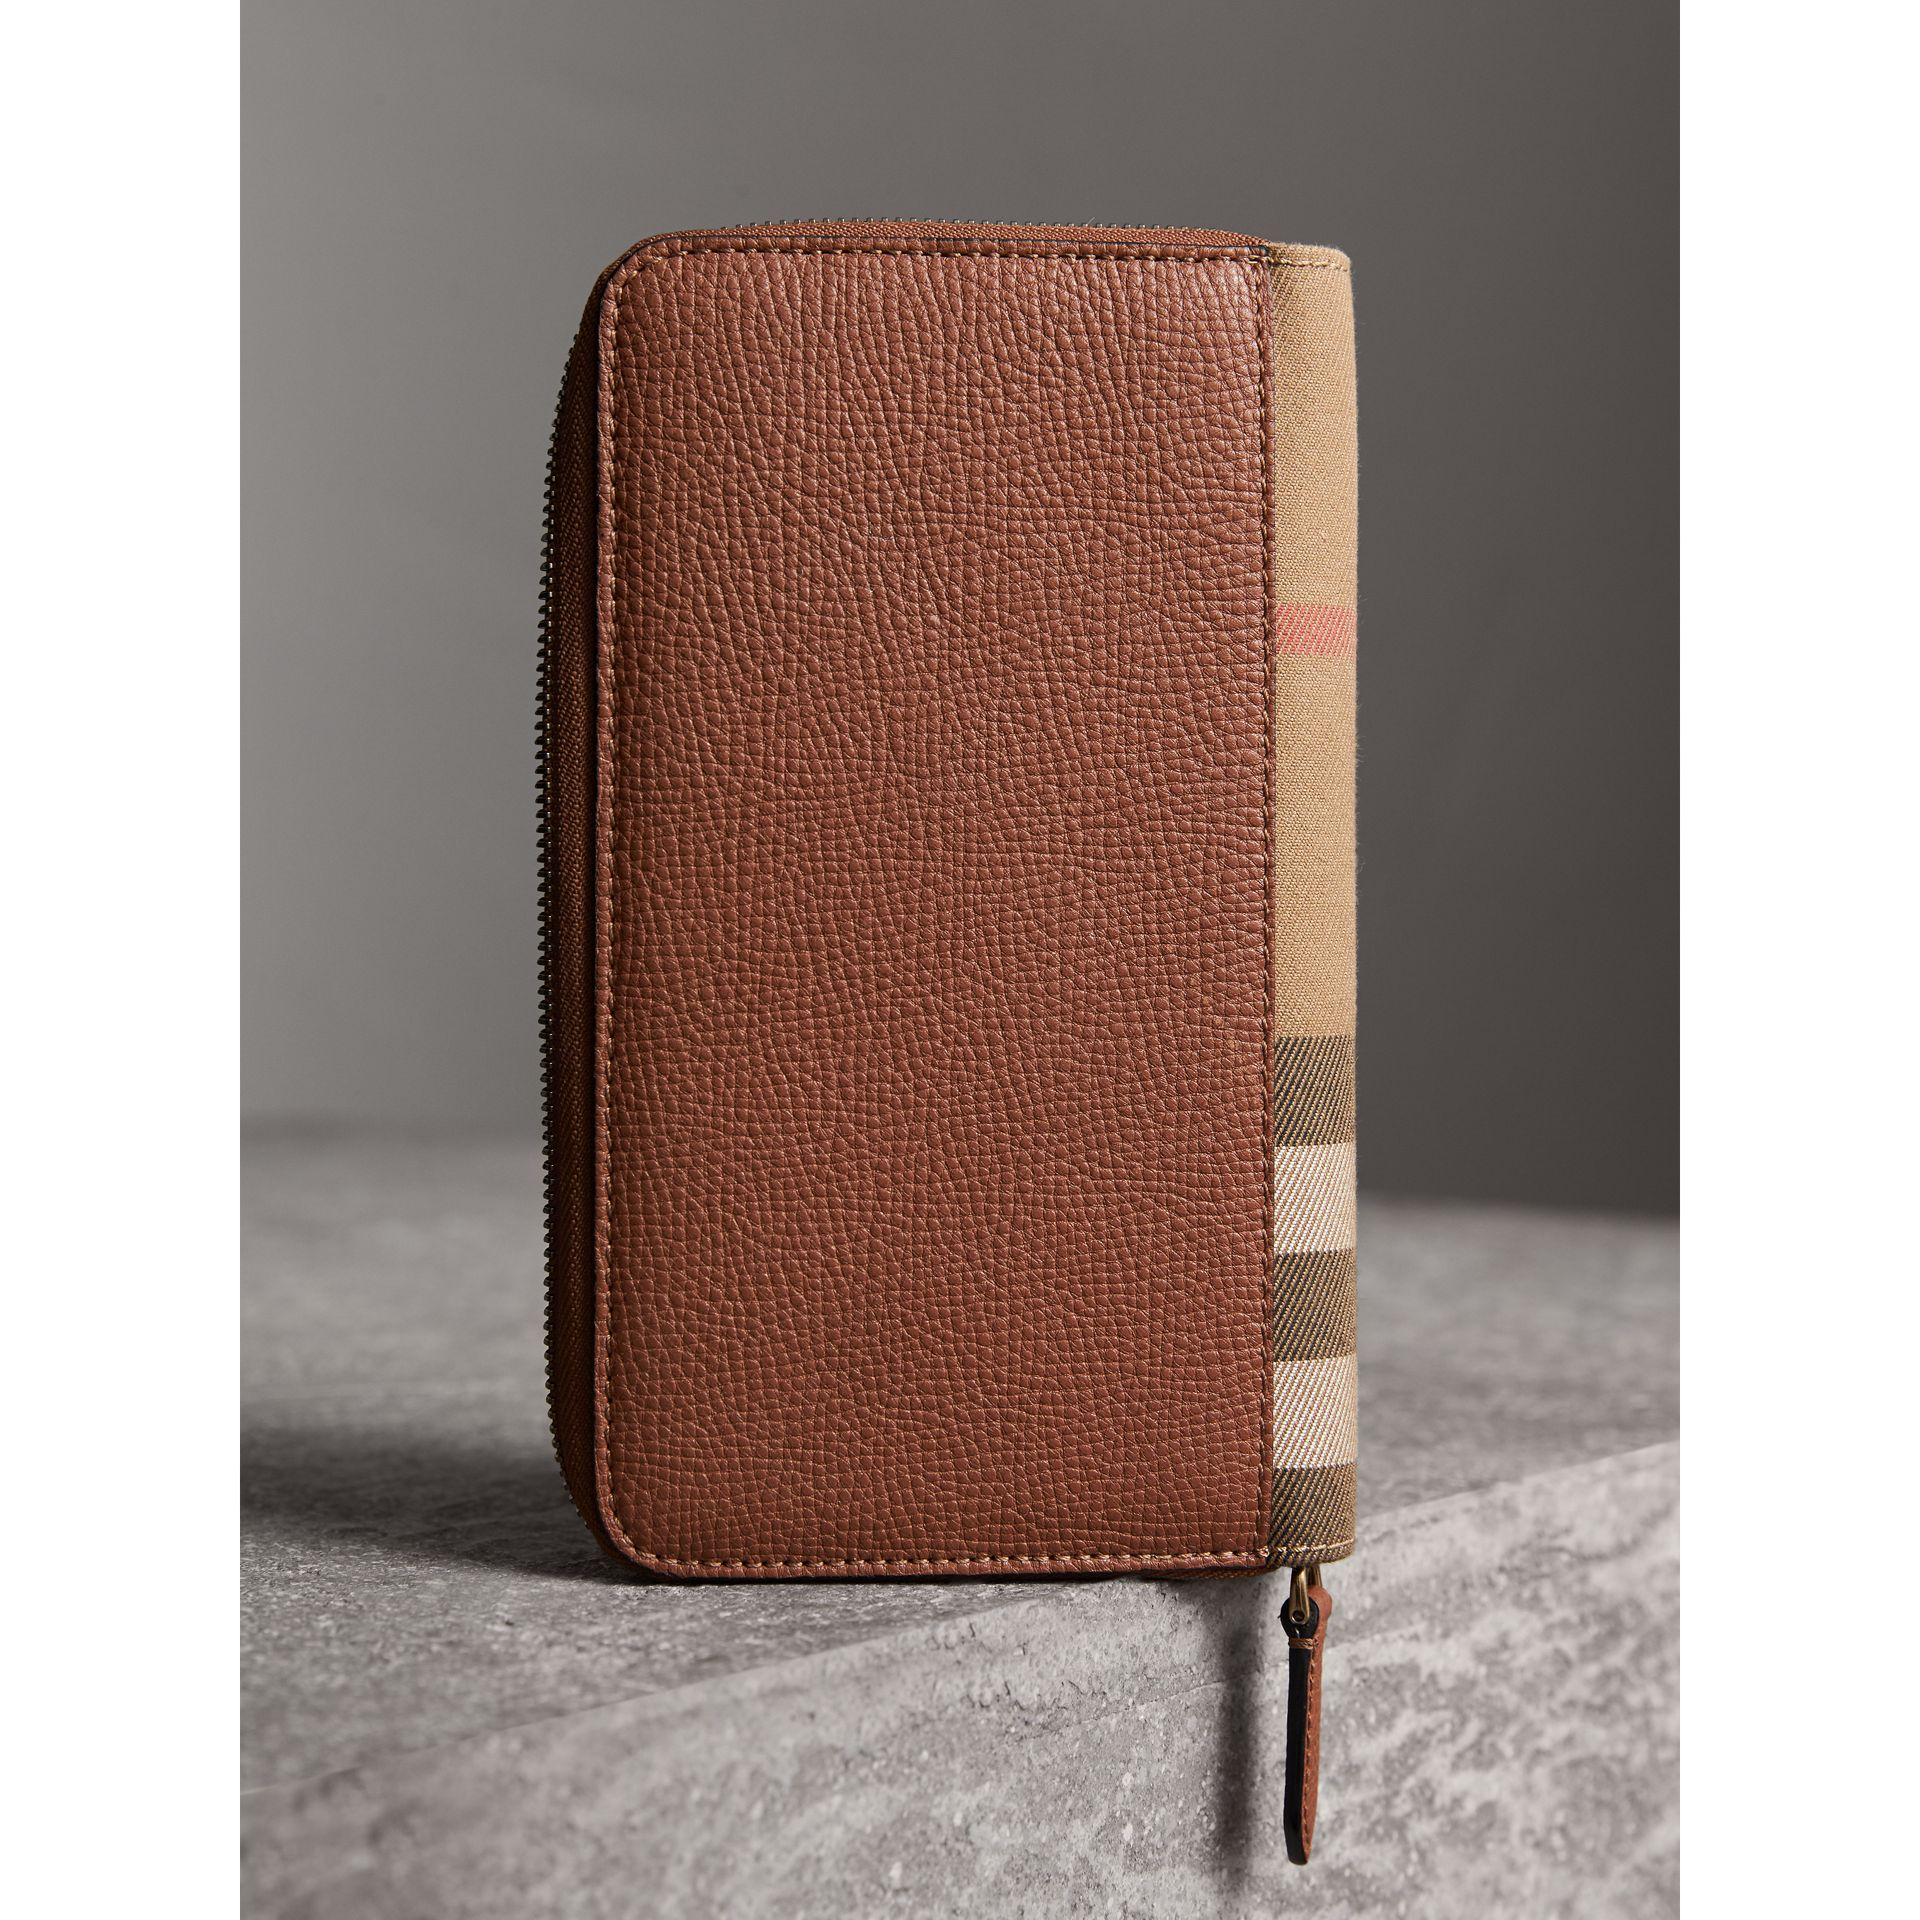 House Check and Grainy Leather Ziparound Wallet in Chestnut Brown - Men | Burberry - gallery image 3